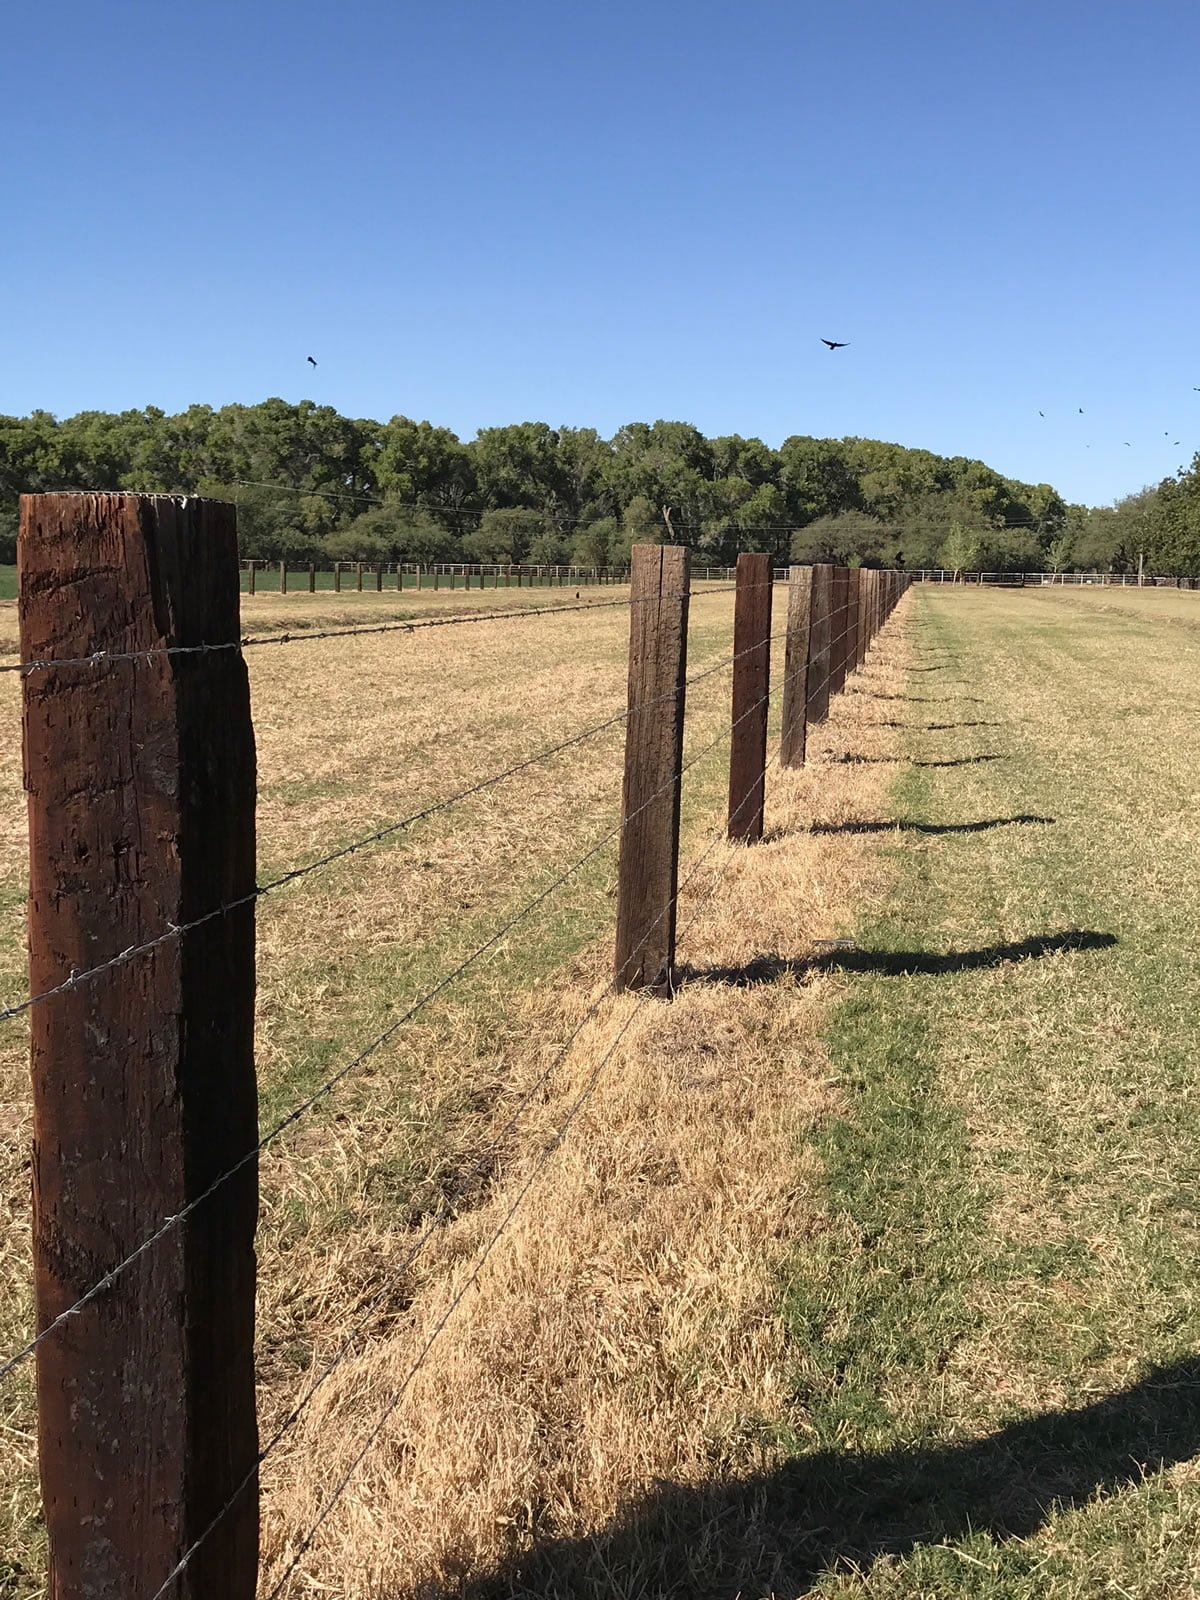 How to Build a Fence Using Railroad Ties - Nevada Railroad